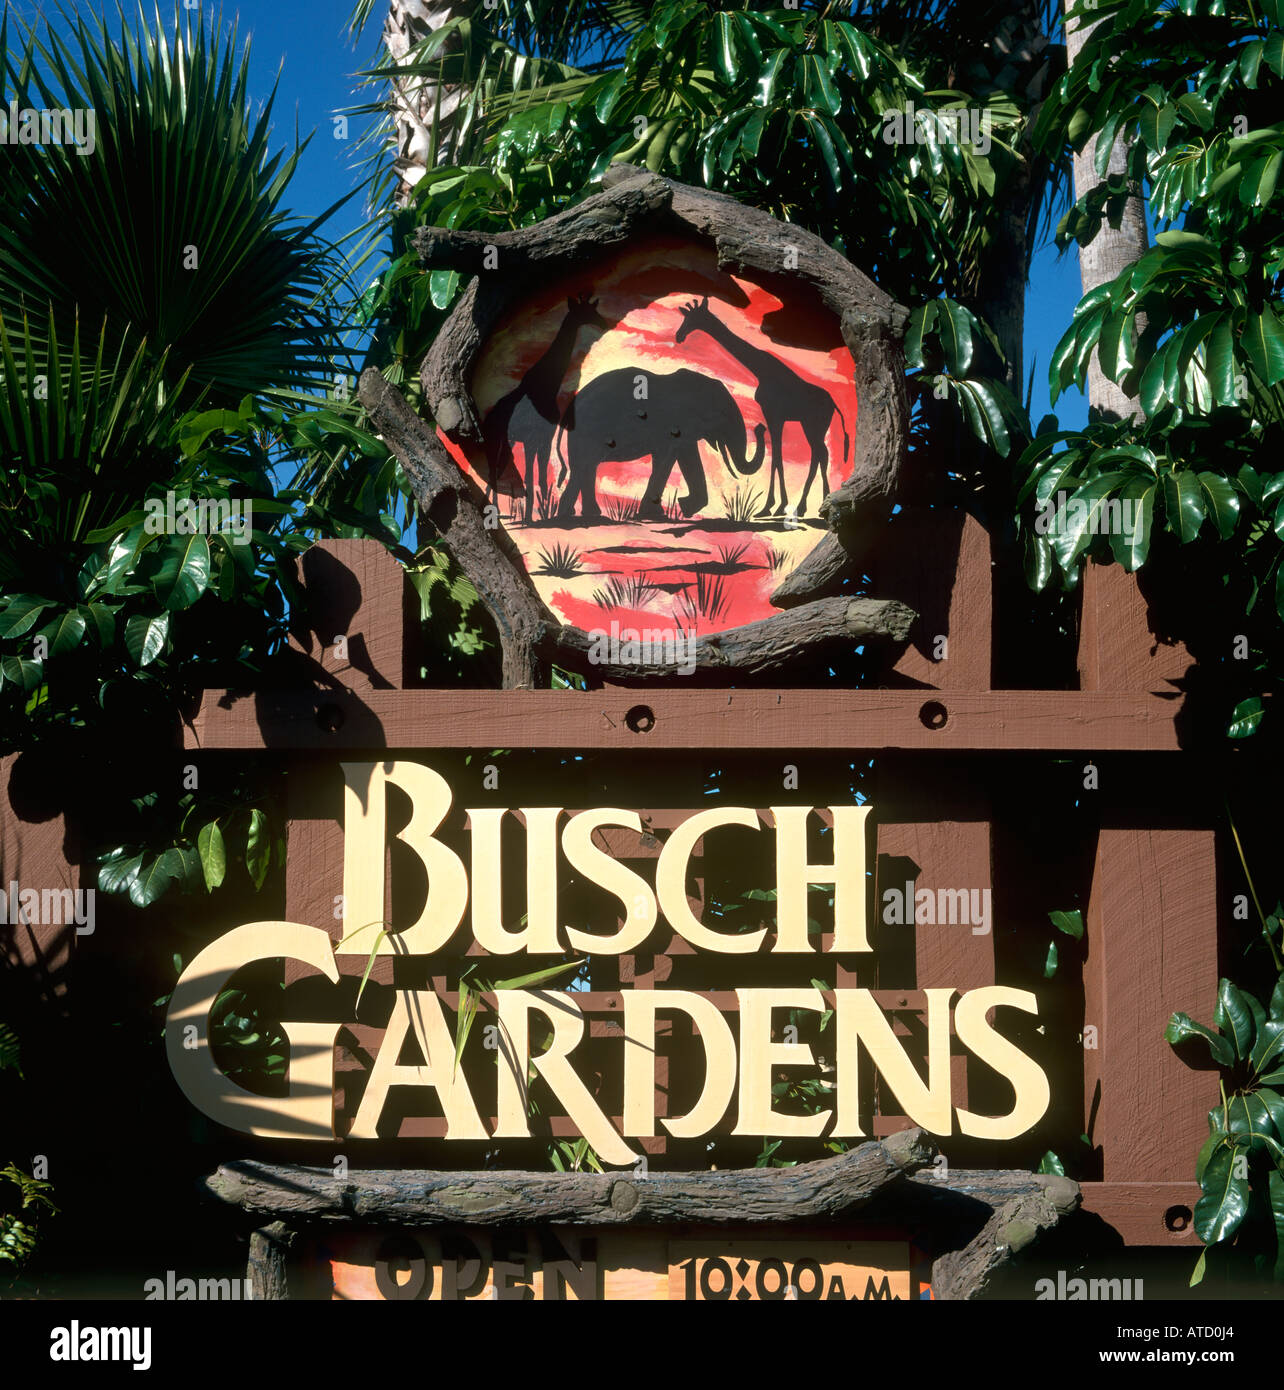 Old Entrance Sign To Busch Gardens Tampa Florida Usa Stock Photo Royalty Free Image 9302307